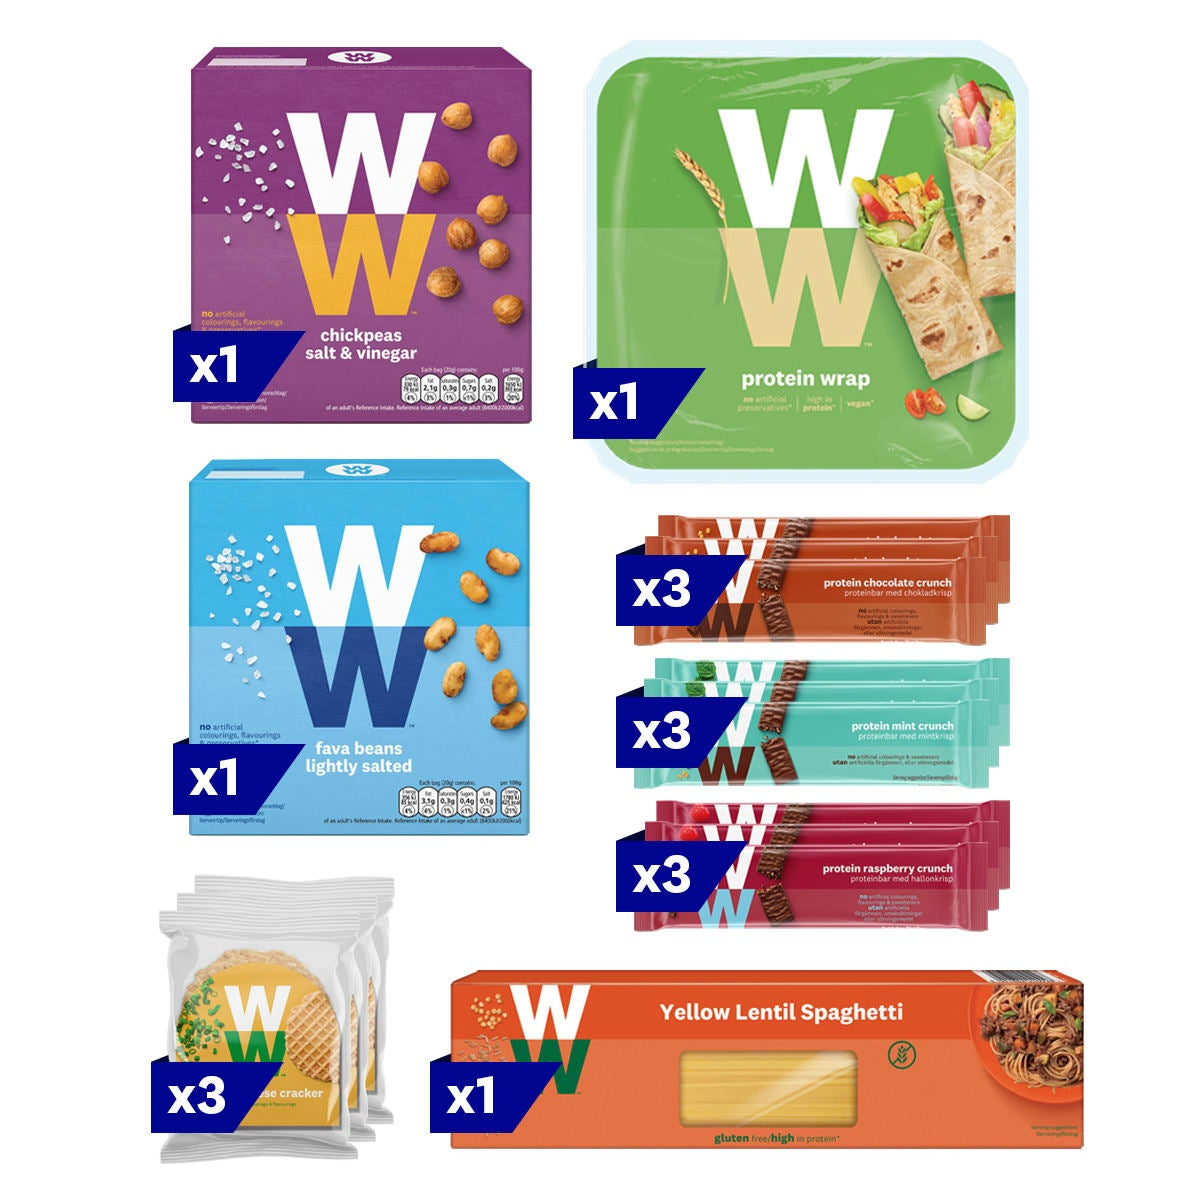 WW Protein Value Bundle, includes 3 of each Chocolate, Mint and Raspberry Protein Bars, 1 x Wraps, 1 x Chickpeas, 1 x Fava Beans, 1 x Lentil Spaghetti, 3 x Protein Crackers